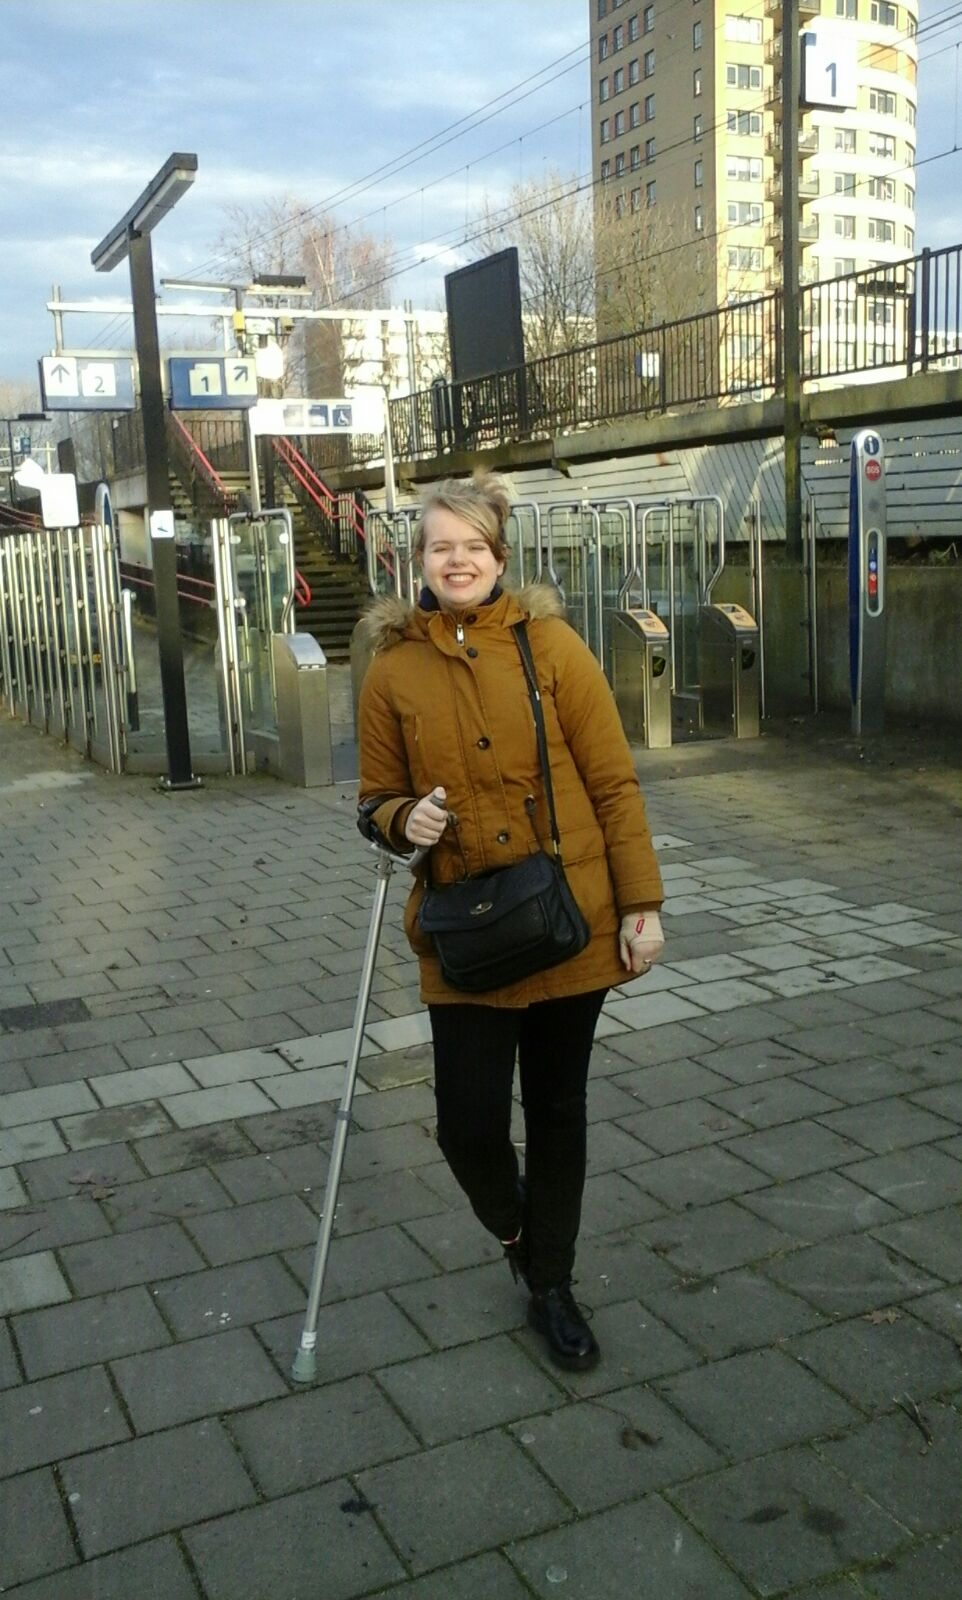 Steffie with her crutch at a trainstation